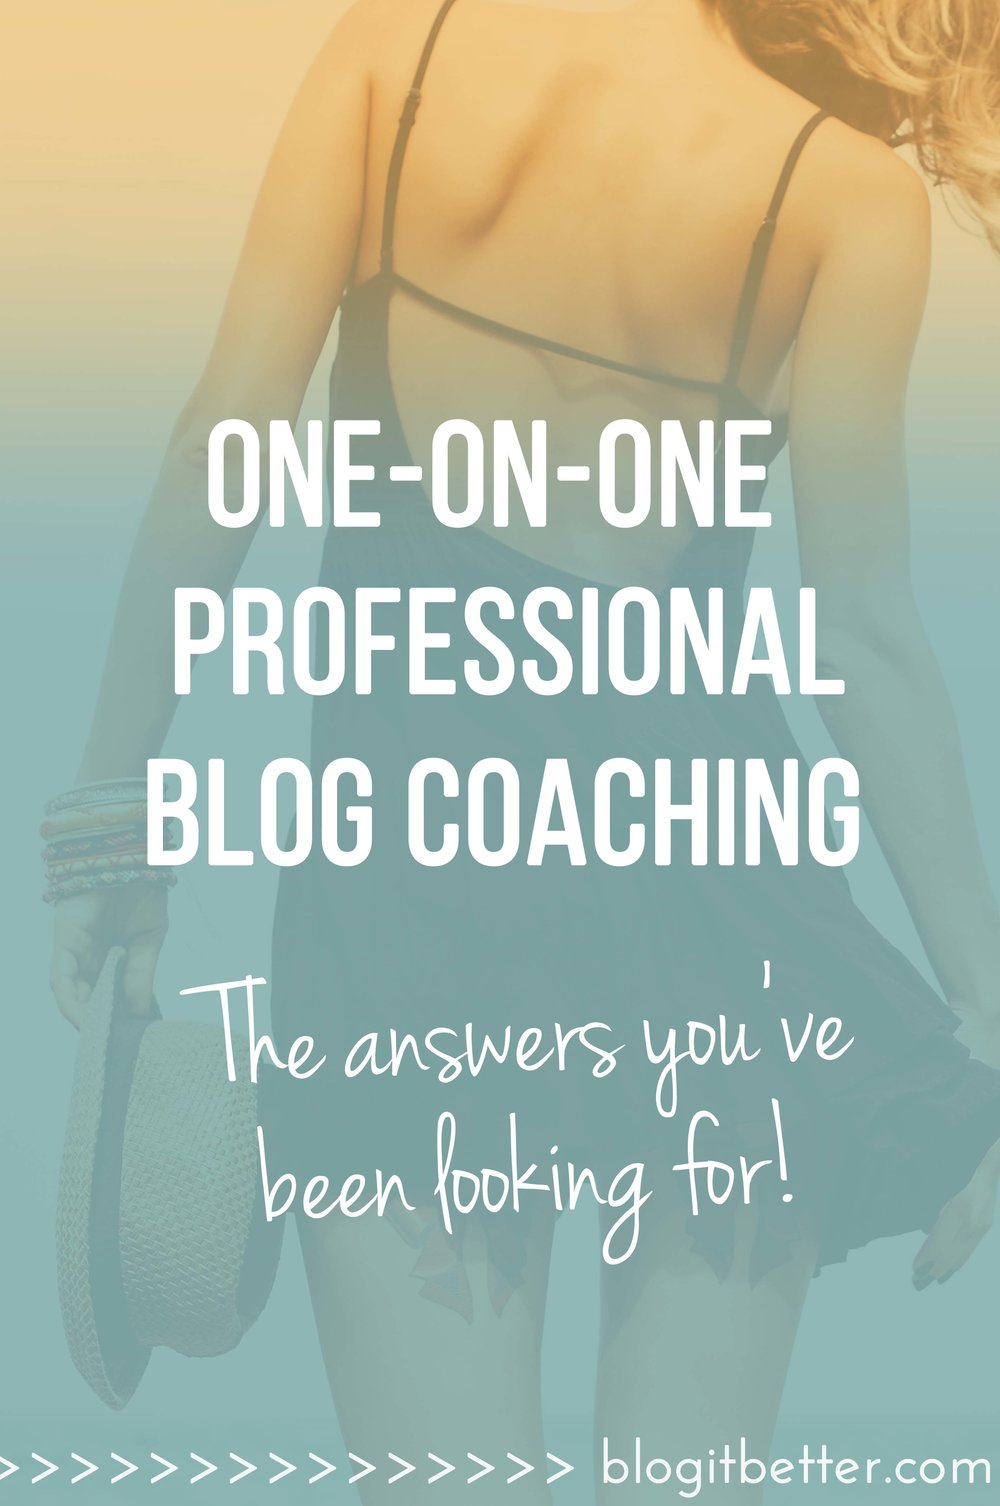 Ready to take your blogging to the next level? Get professional with one-on-one coaching by a seasoned blogger!